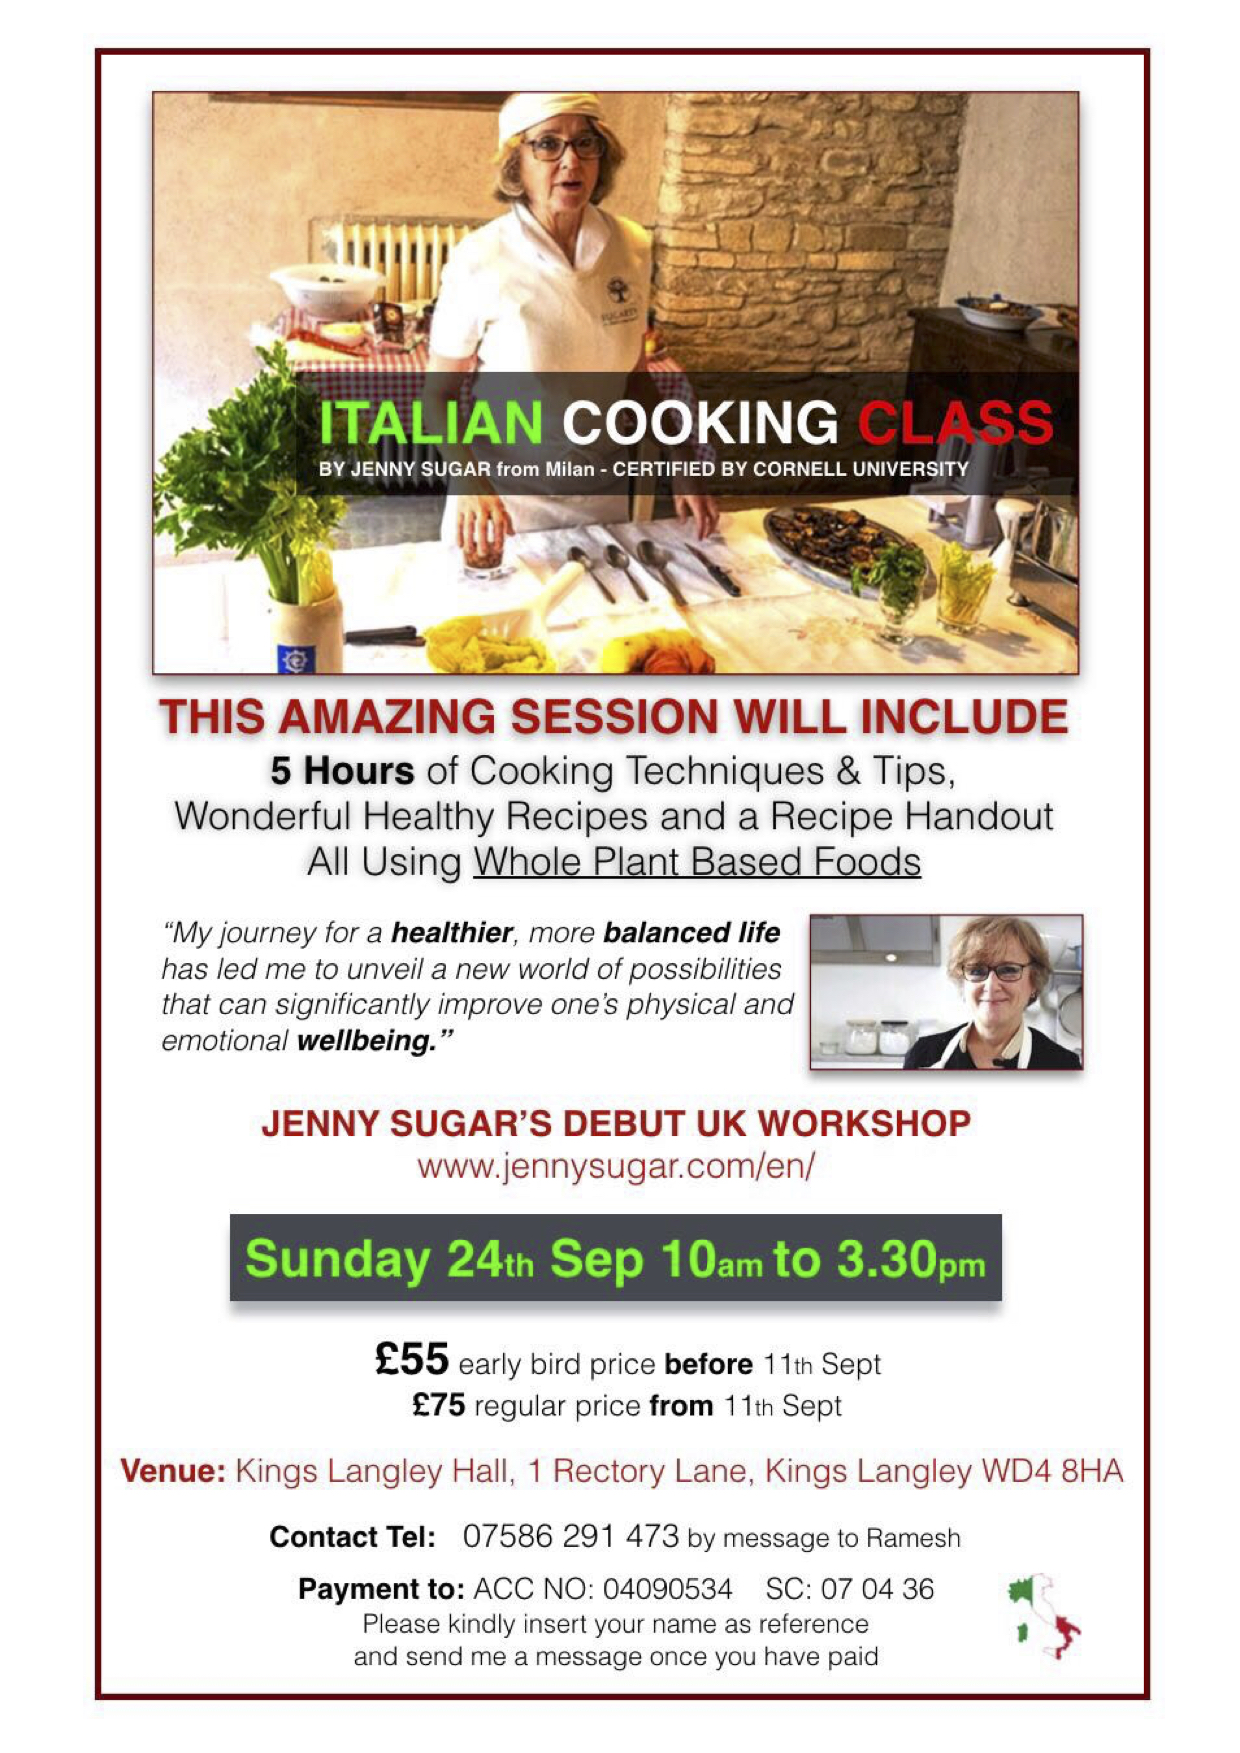 Italian Whole Plant Based Nutrition And Cuisine, Workshop In London